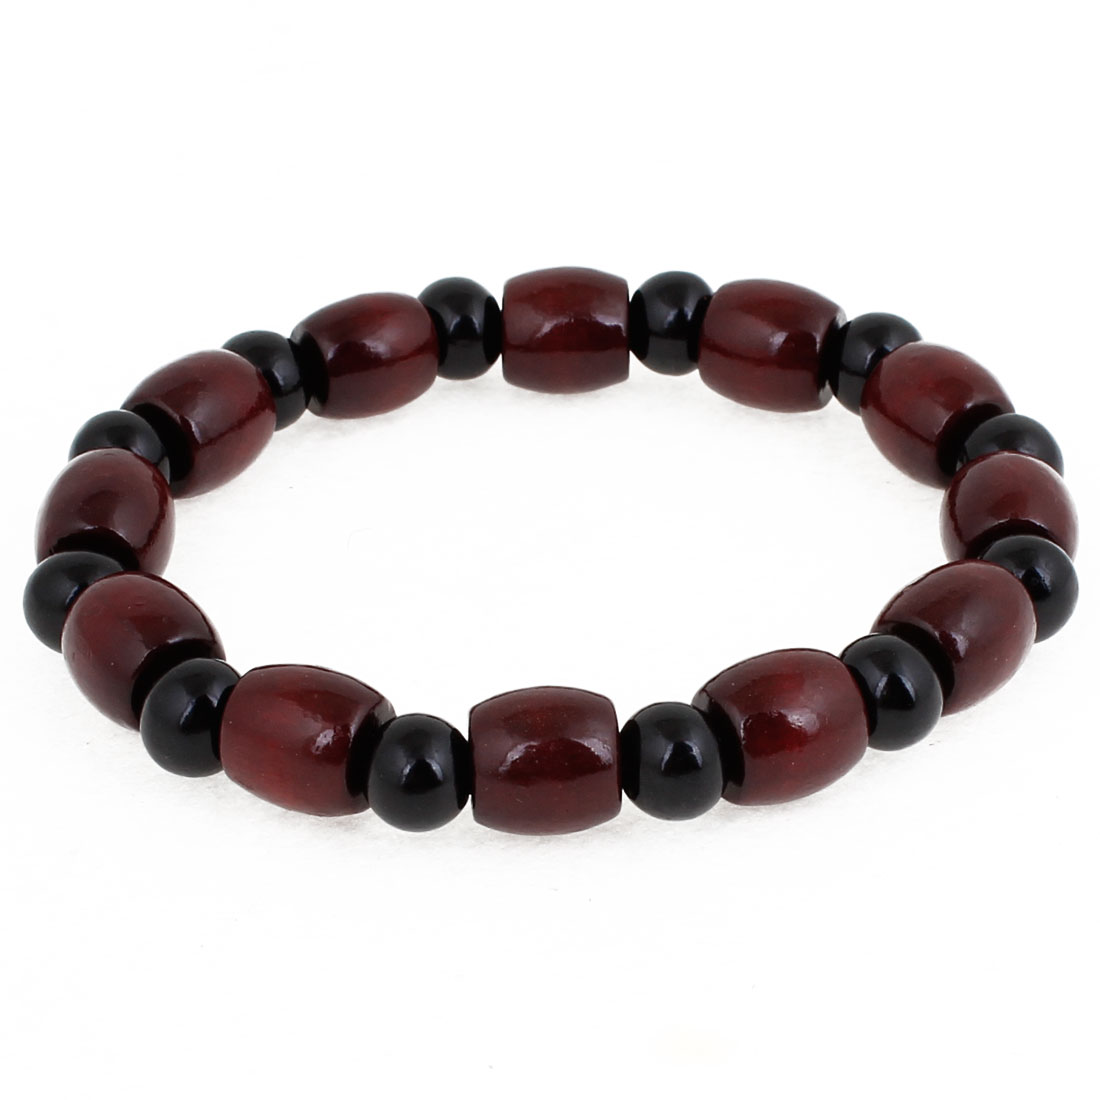 Plastic Black Round Burgundy Cylindrical Shape Beads Decor Elastic Bracelet